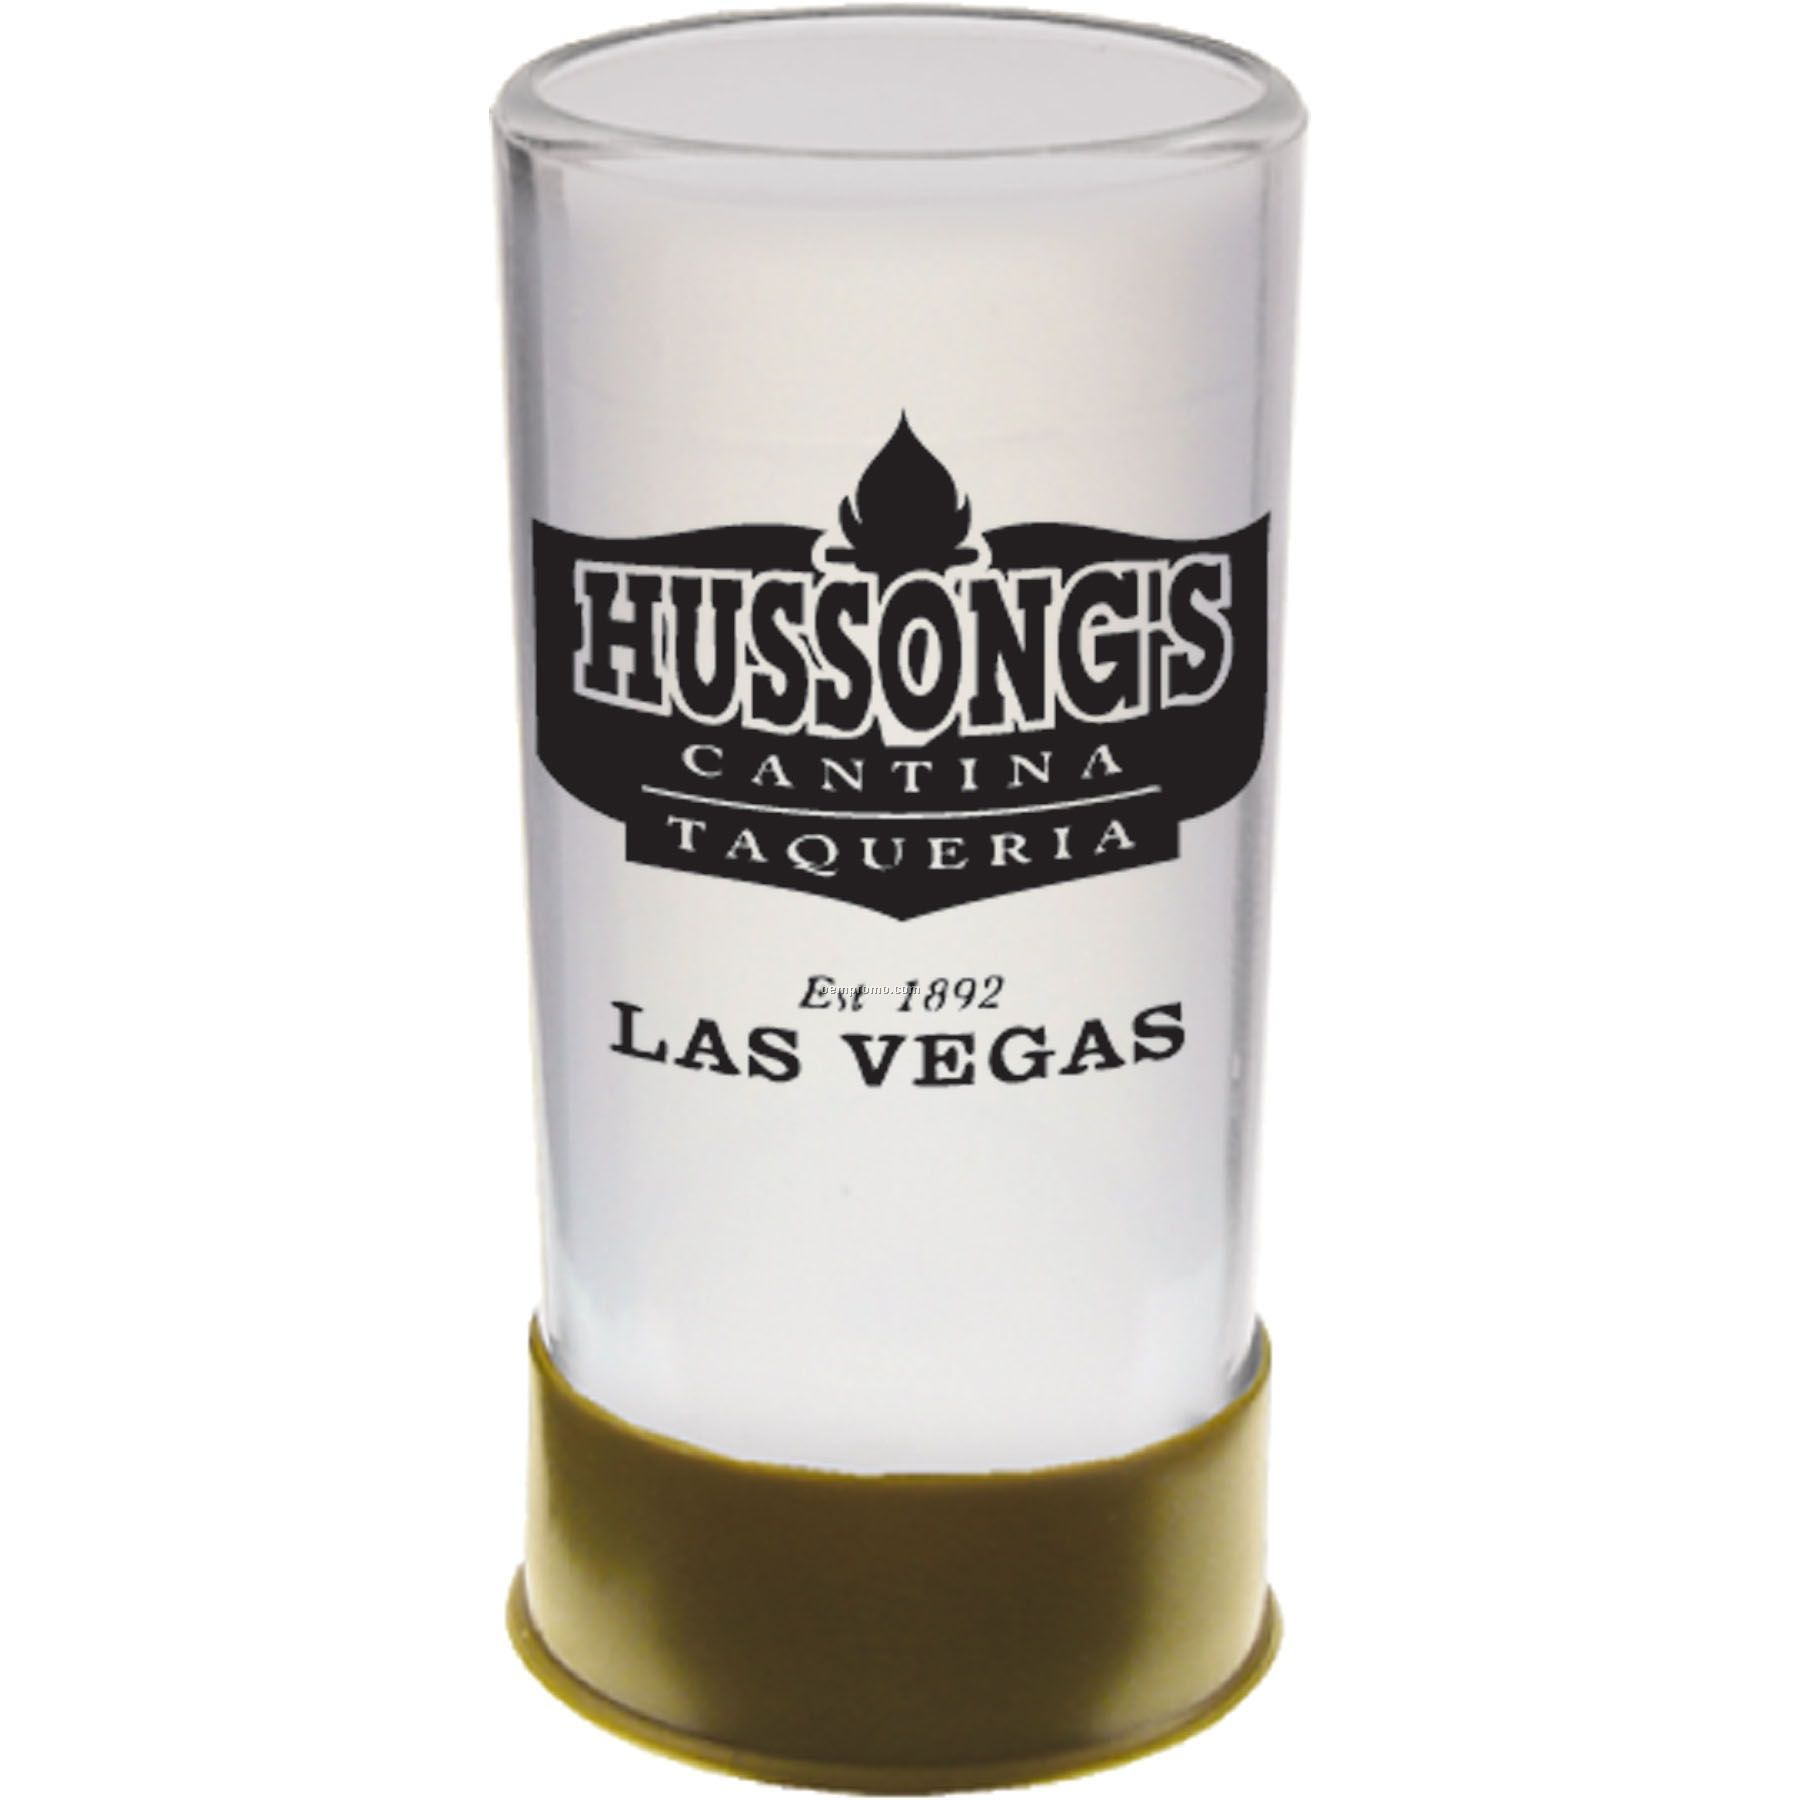 1.5 Oz. Shot Gun Shell Shooter Glass